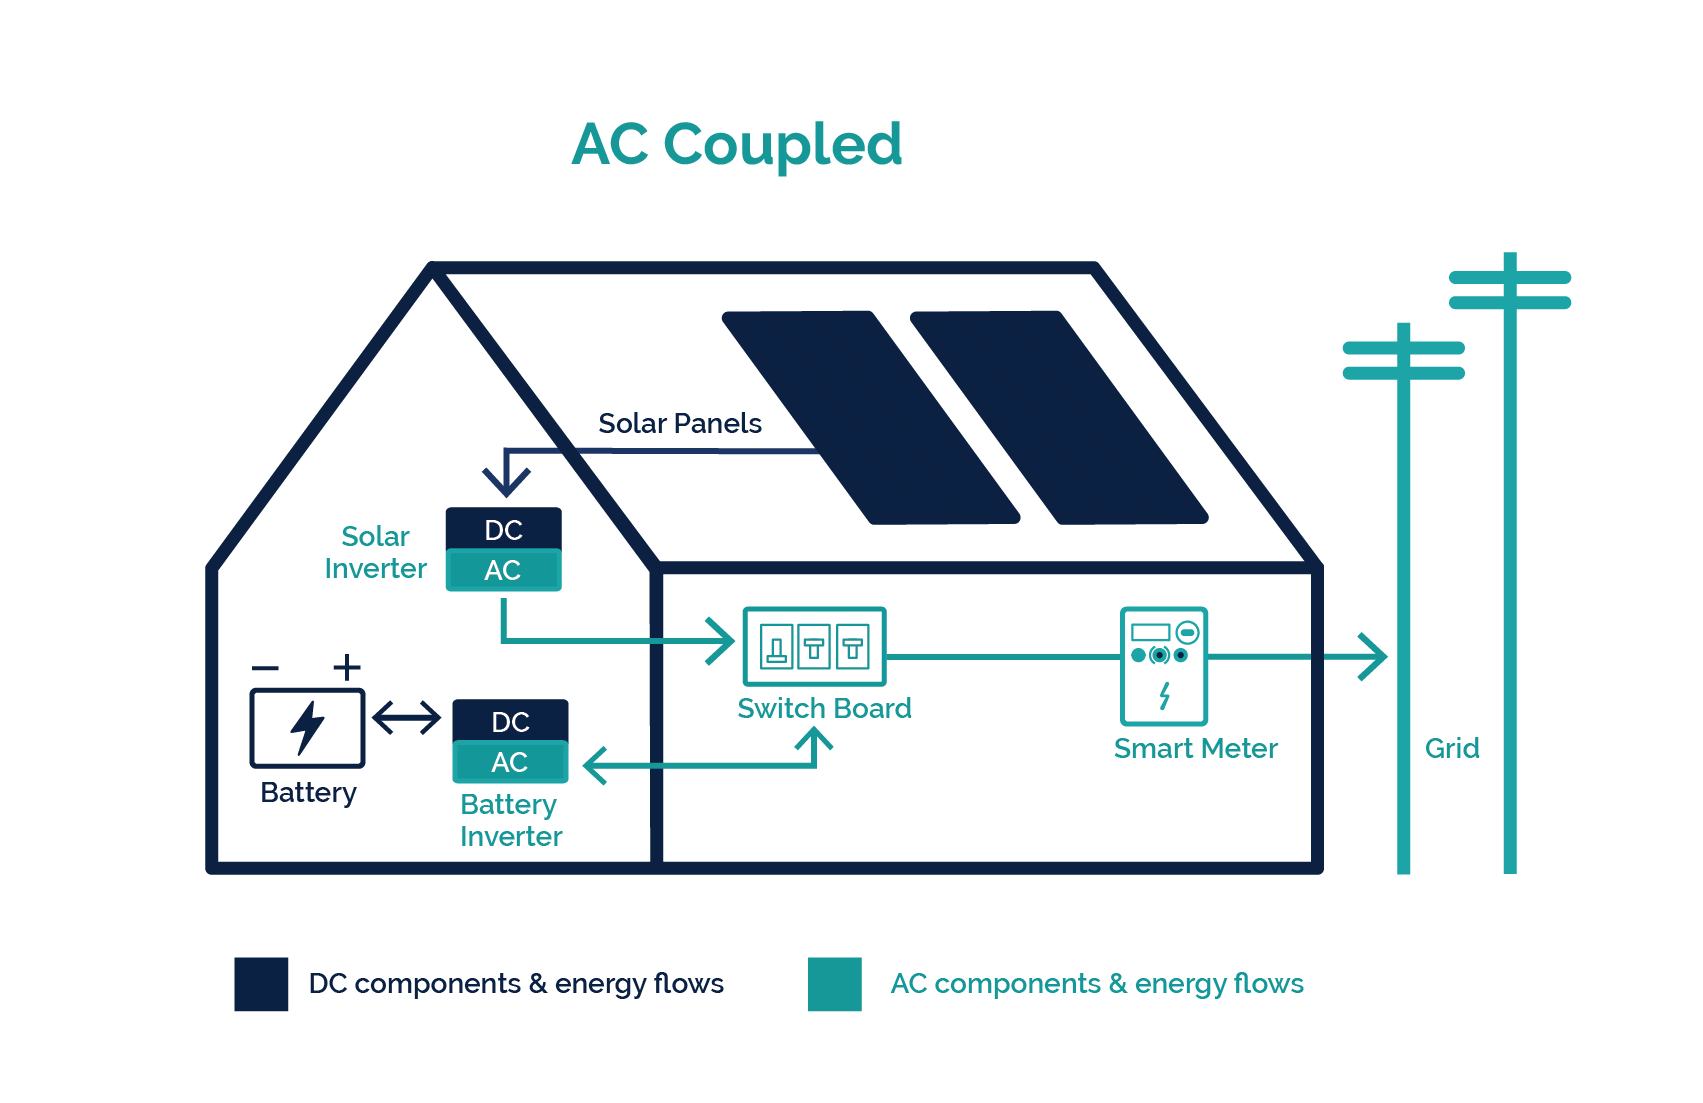 Ac Coupled Battery